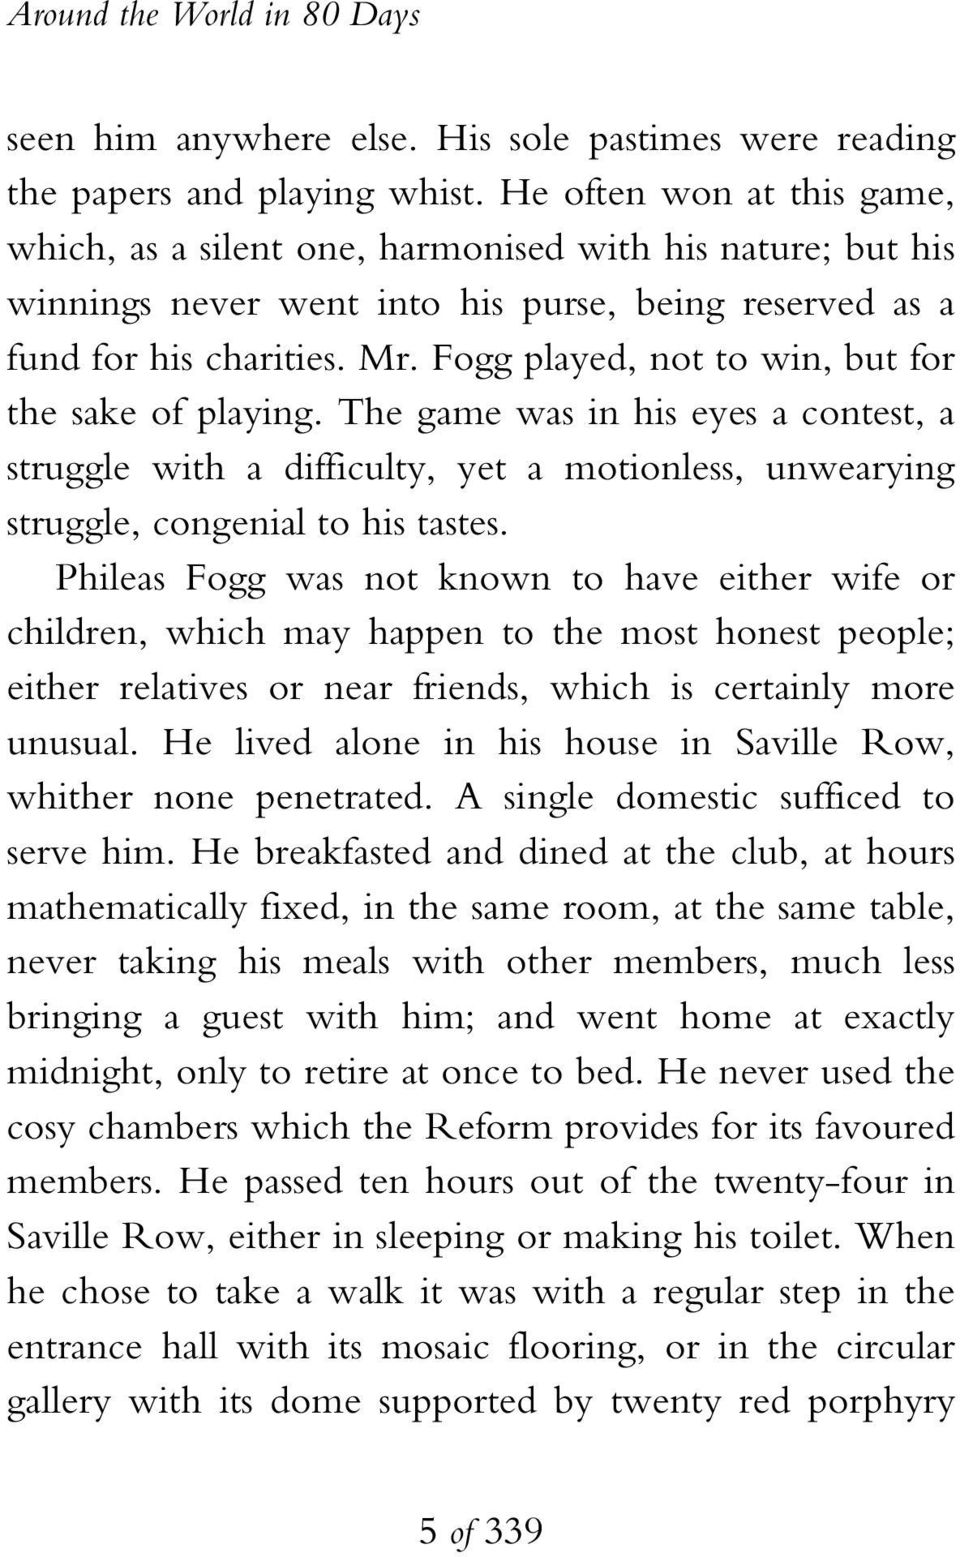 Fogg played, not to win, but for the sake of playing. The game was in his eyes a contest, a struggle with a difficulty, yet a motionless, unwearying struggle, congenial to his tastes.